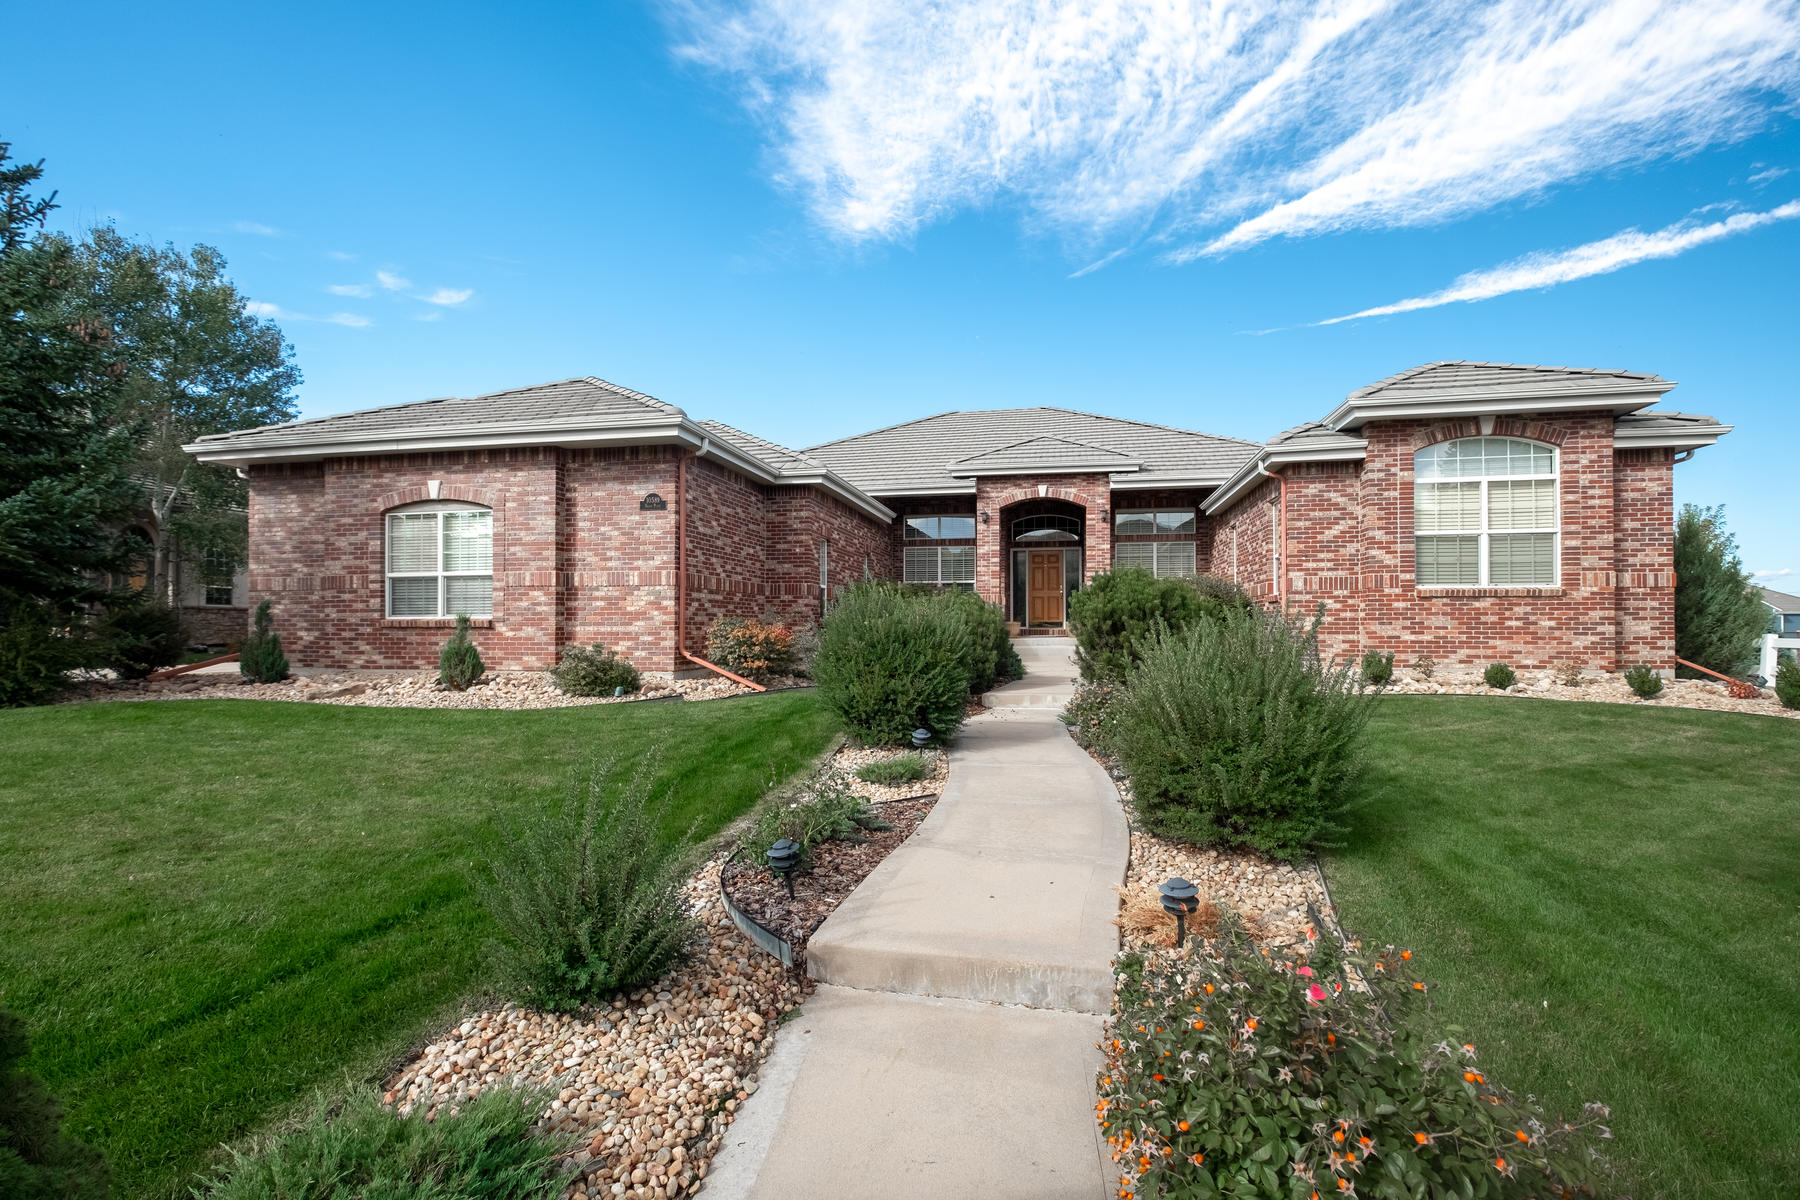 Single Family Homes for Sale at Incredible opportunity in the estates at Carriage club 10589 Dacre Place Lone Tree, Colorado 80124 United States